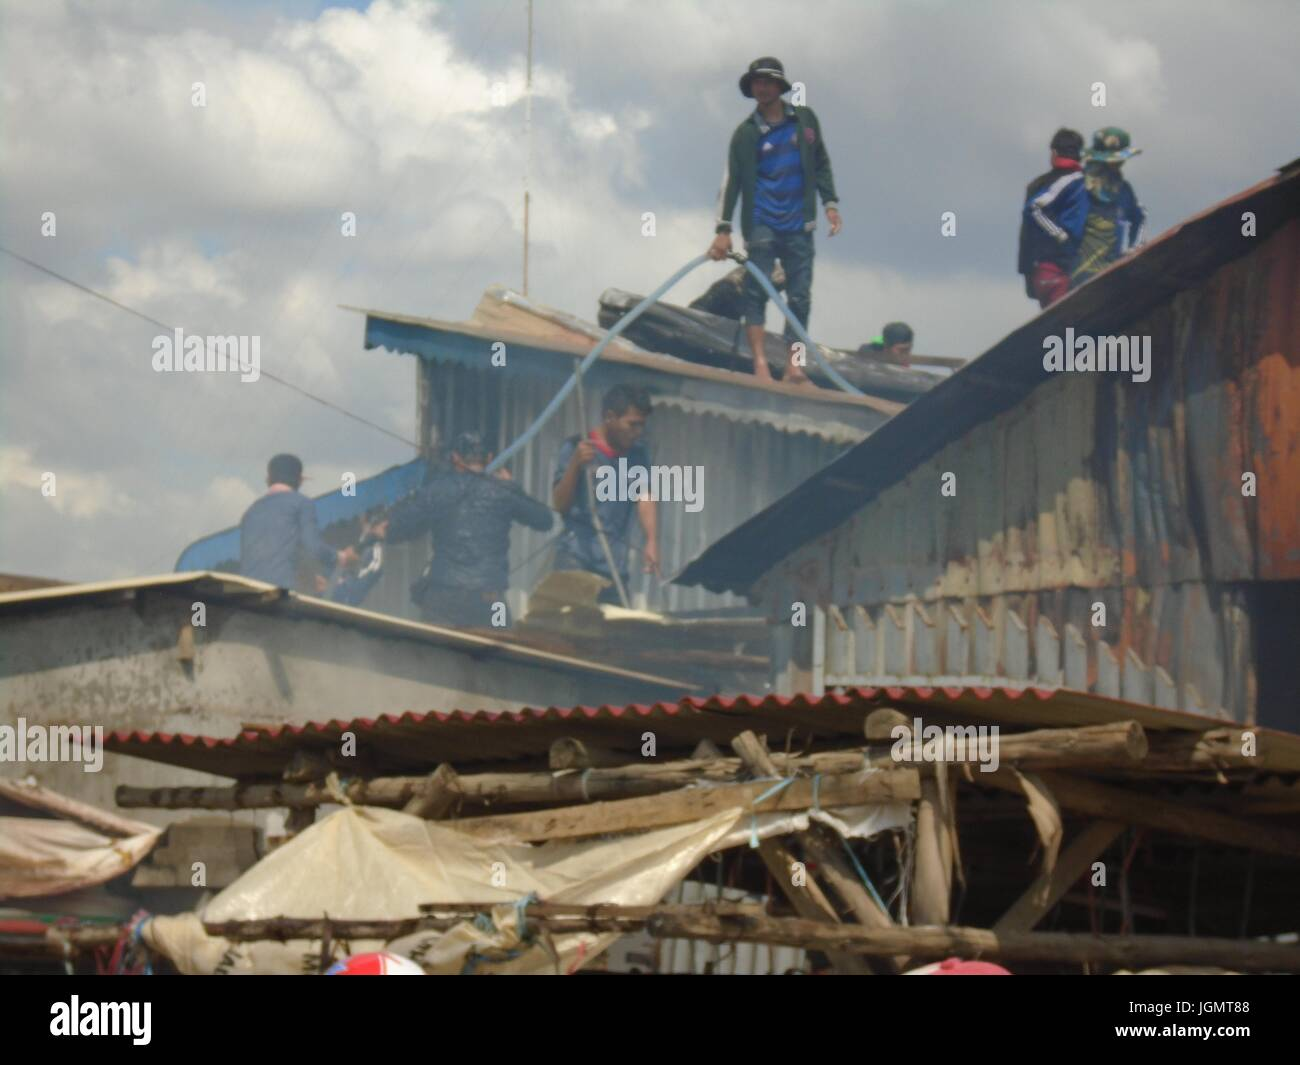 Emergency Resque Fire and First Responders Poipet Cambodia Decrepit Impoverished Town on the Thailand Border Line Stock Photo